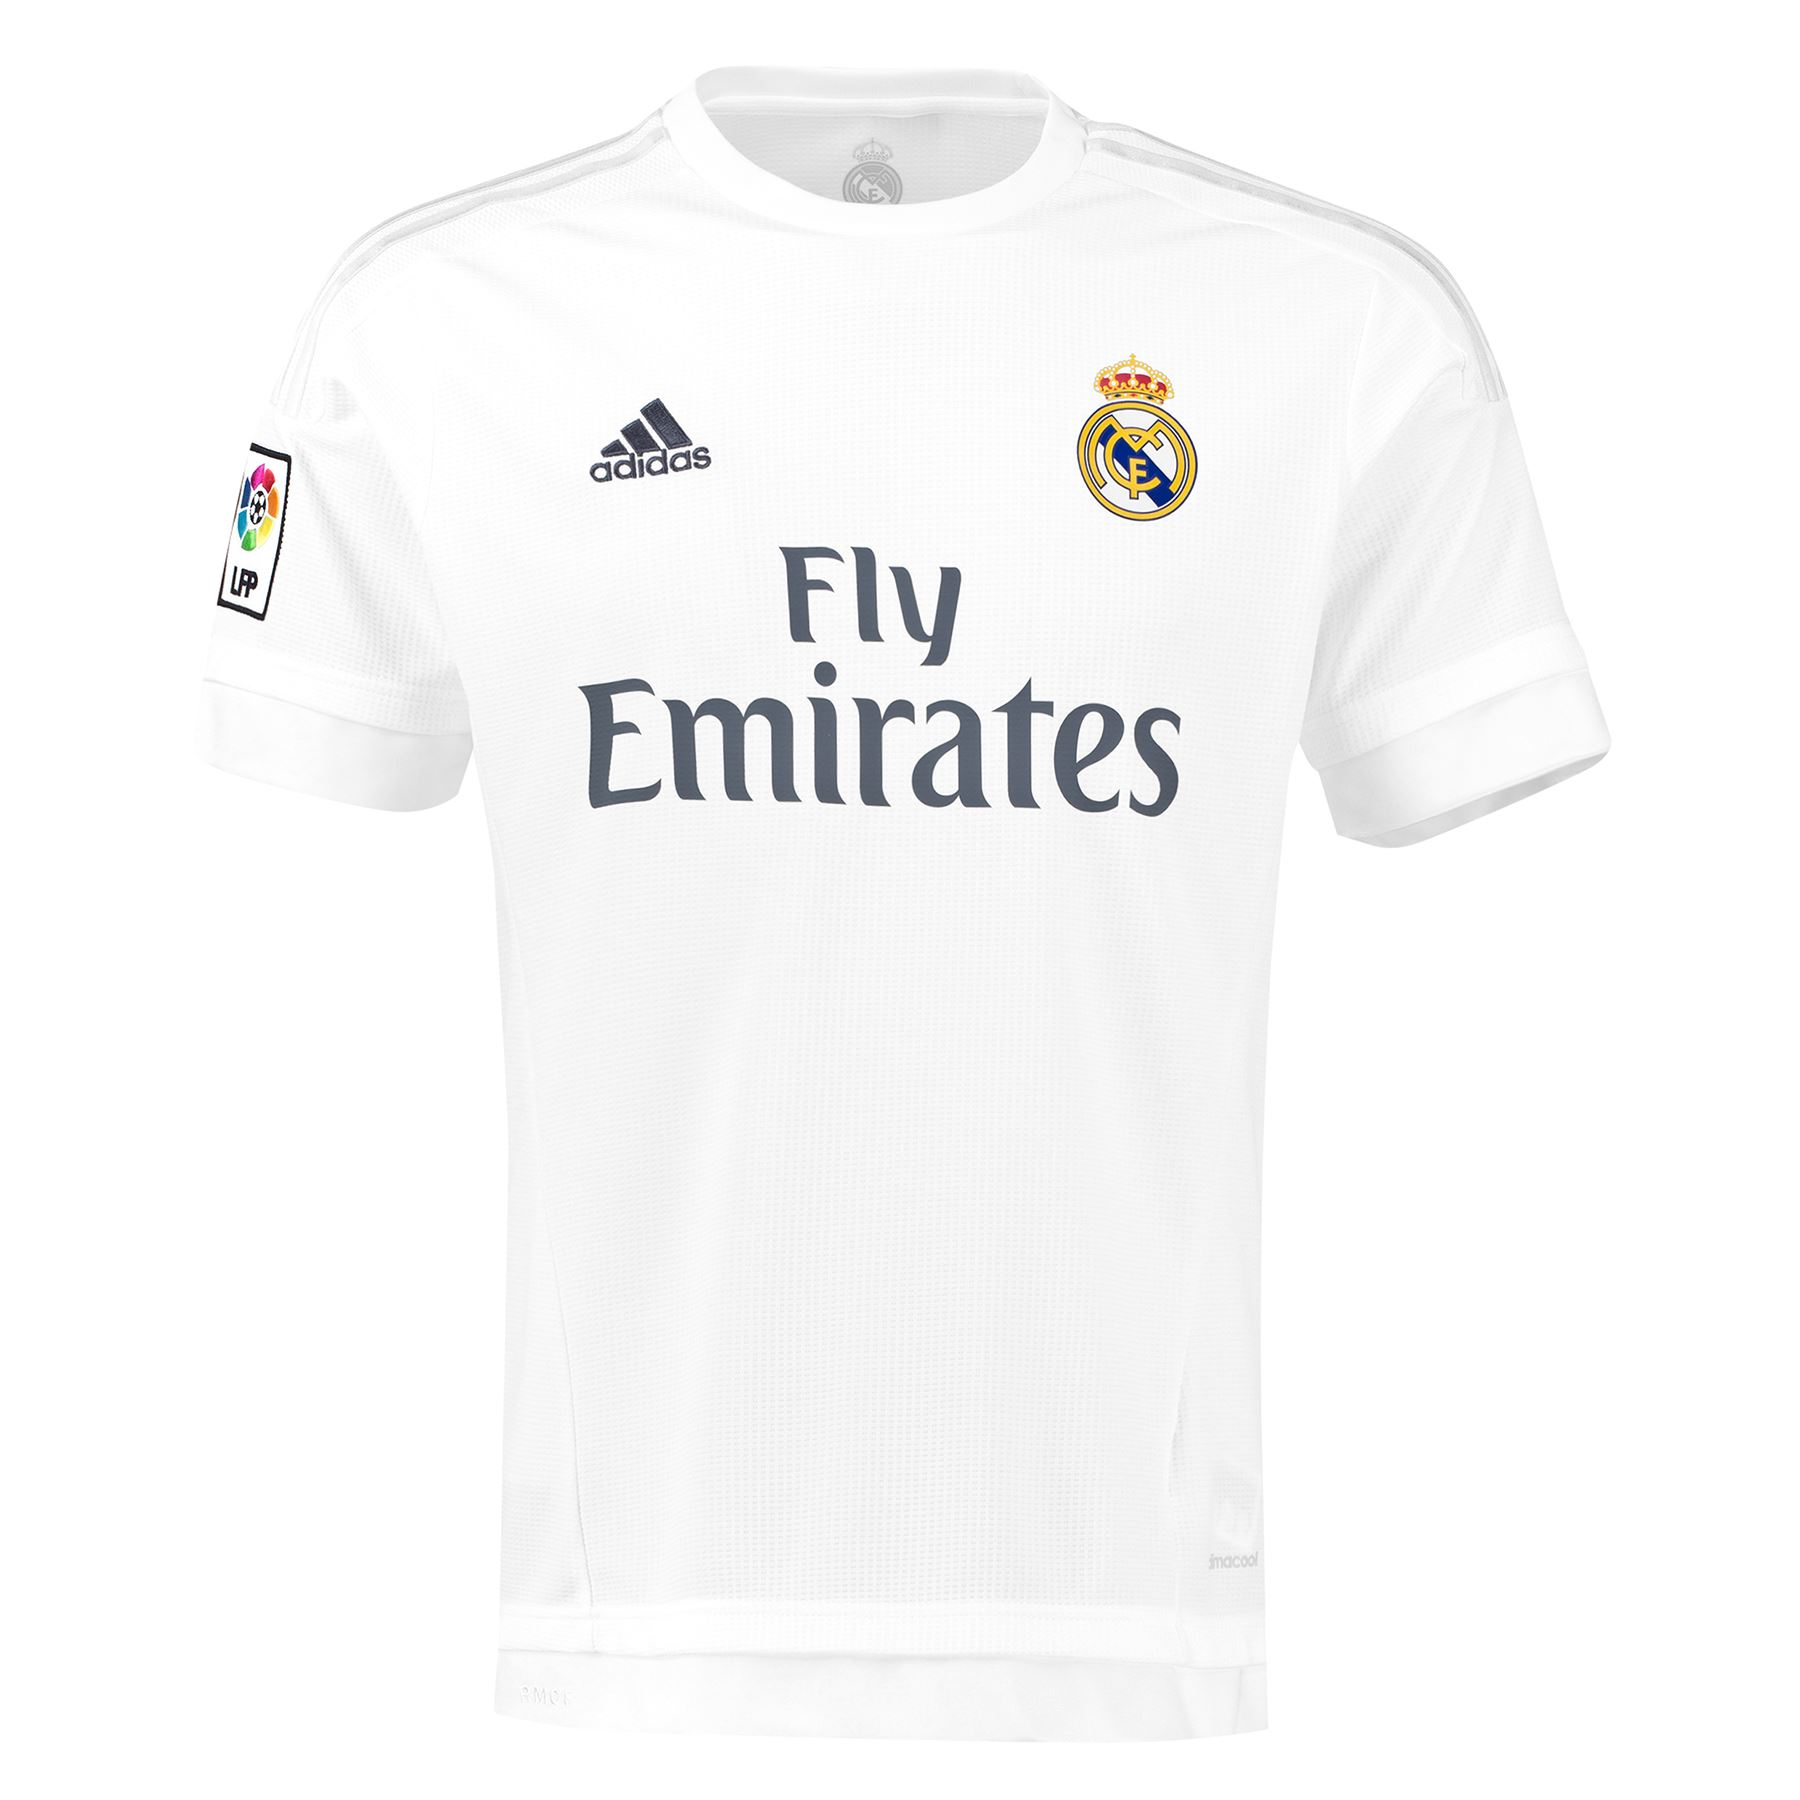 adidas mens real madrid football home shirt jersey t shirt top 2015 16 white ebay. Black Bedroom Furniture Sets. Home Design Ideas